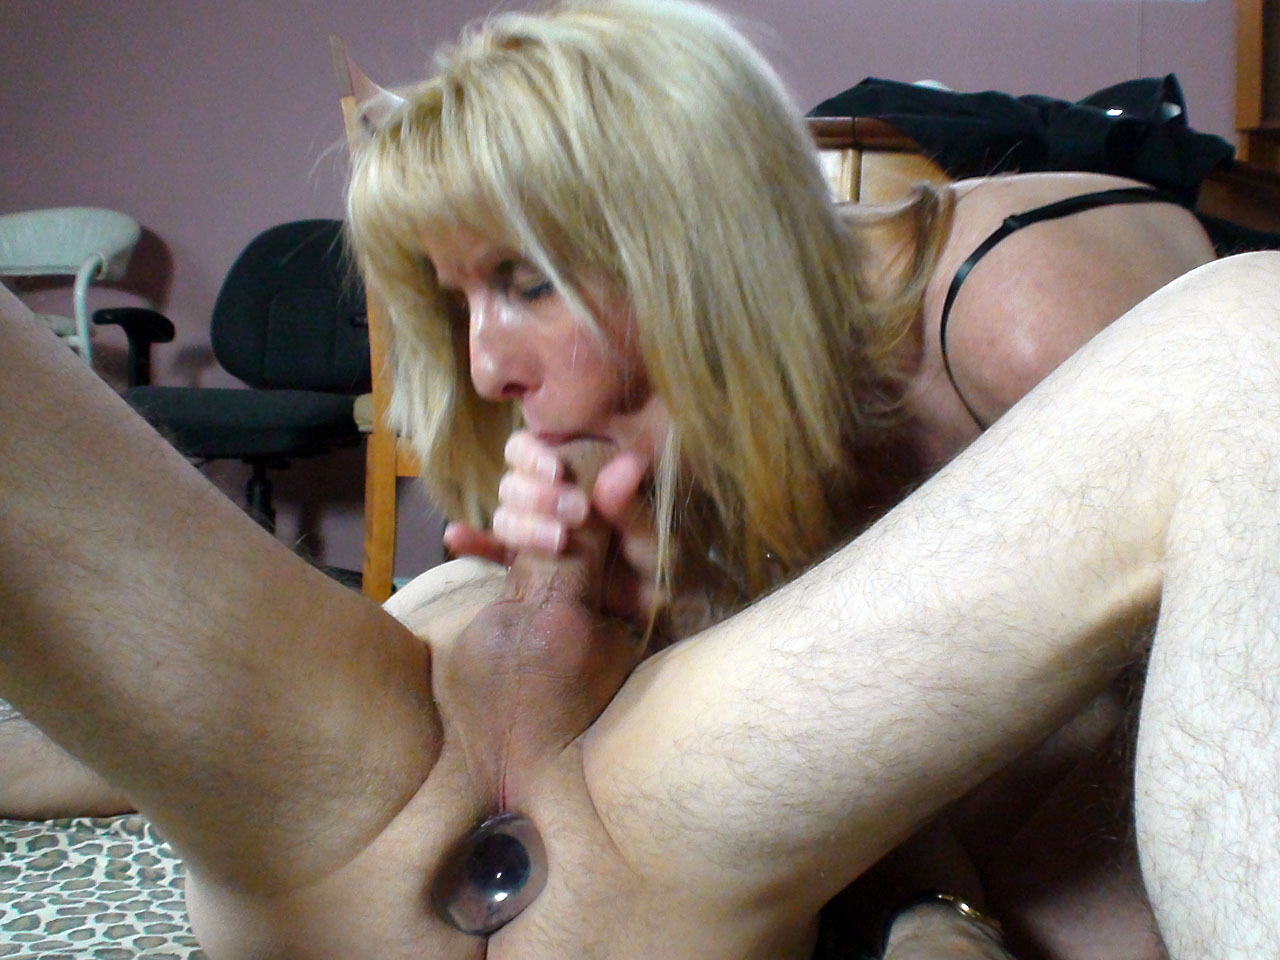 image Blonde milf prostate milking with strapon femdom foot worship and cum play